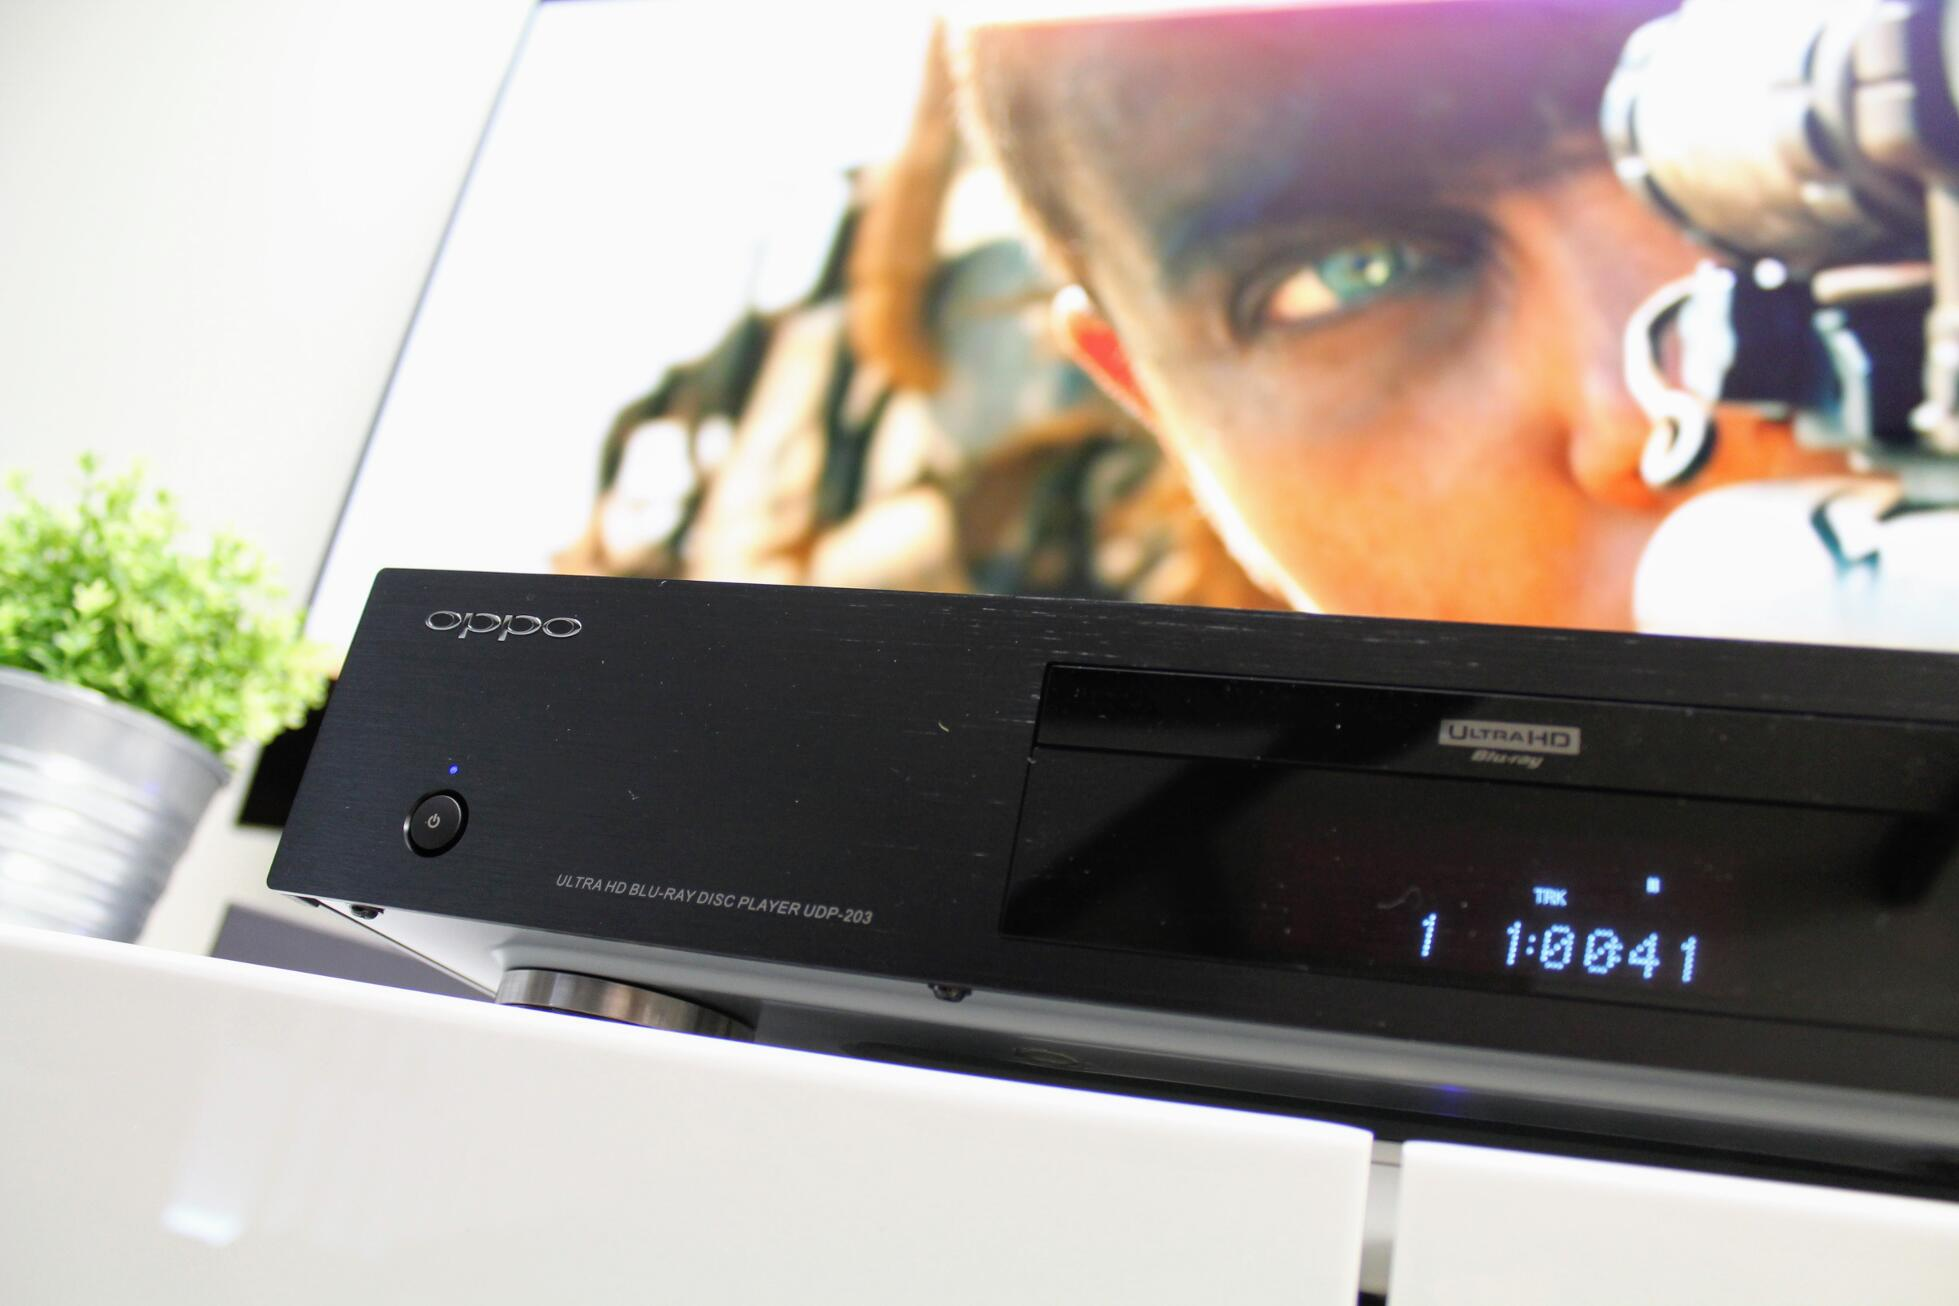 Review: Oppo UDP-203 (4K Ultra HD Blu-ray player) - Son-Vidéo com: blog